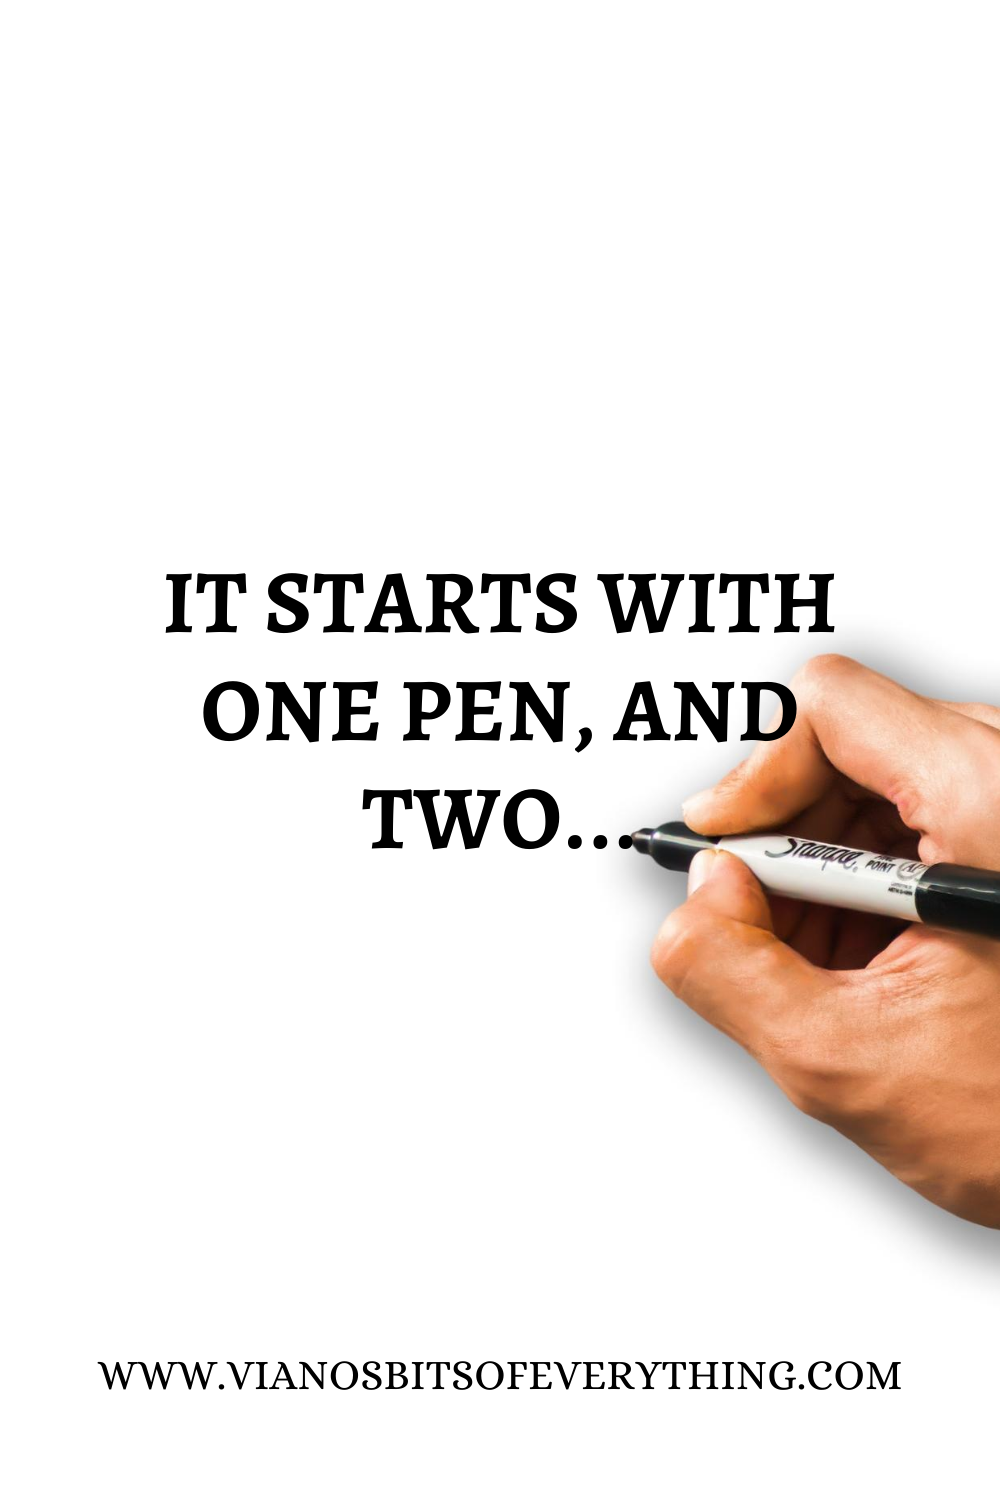 It starts with one pen, and two..